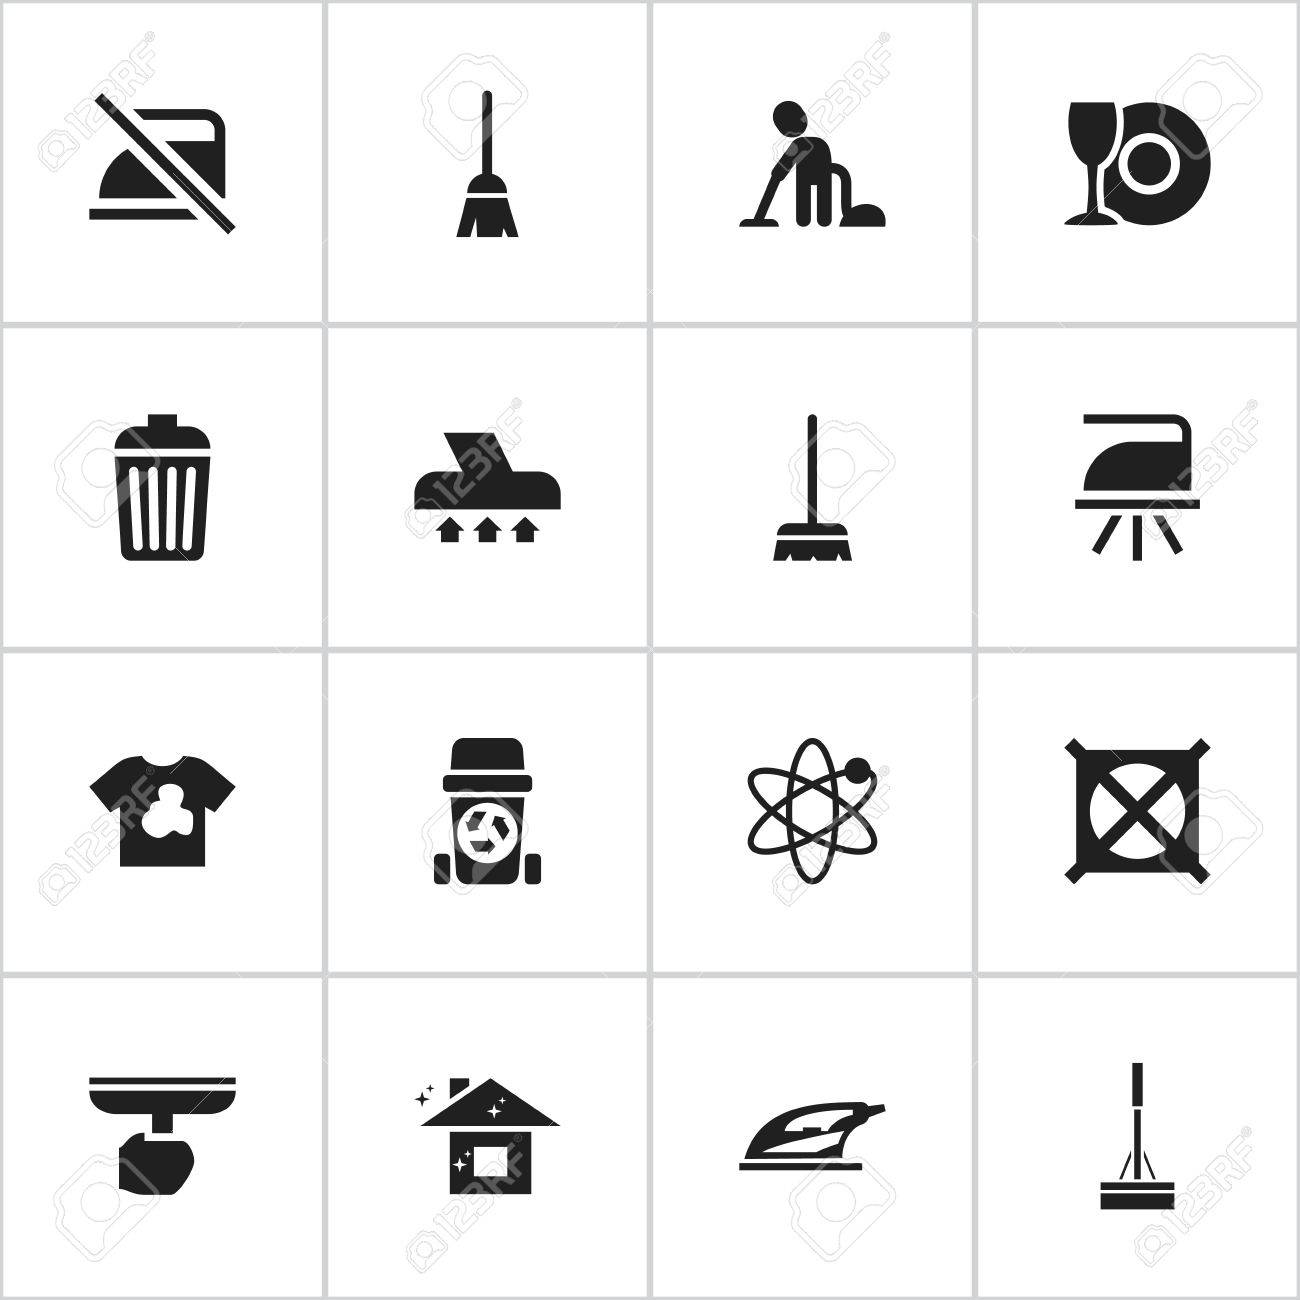 Set Of 16 Editable Dry Cleaning Icons Includes Symbols Such